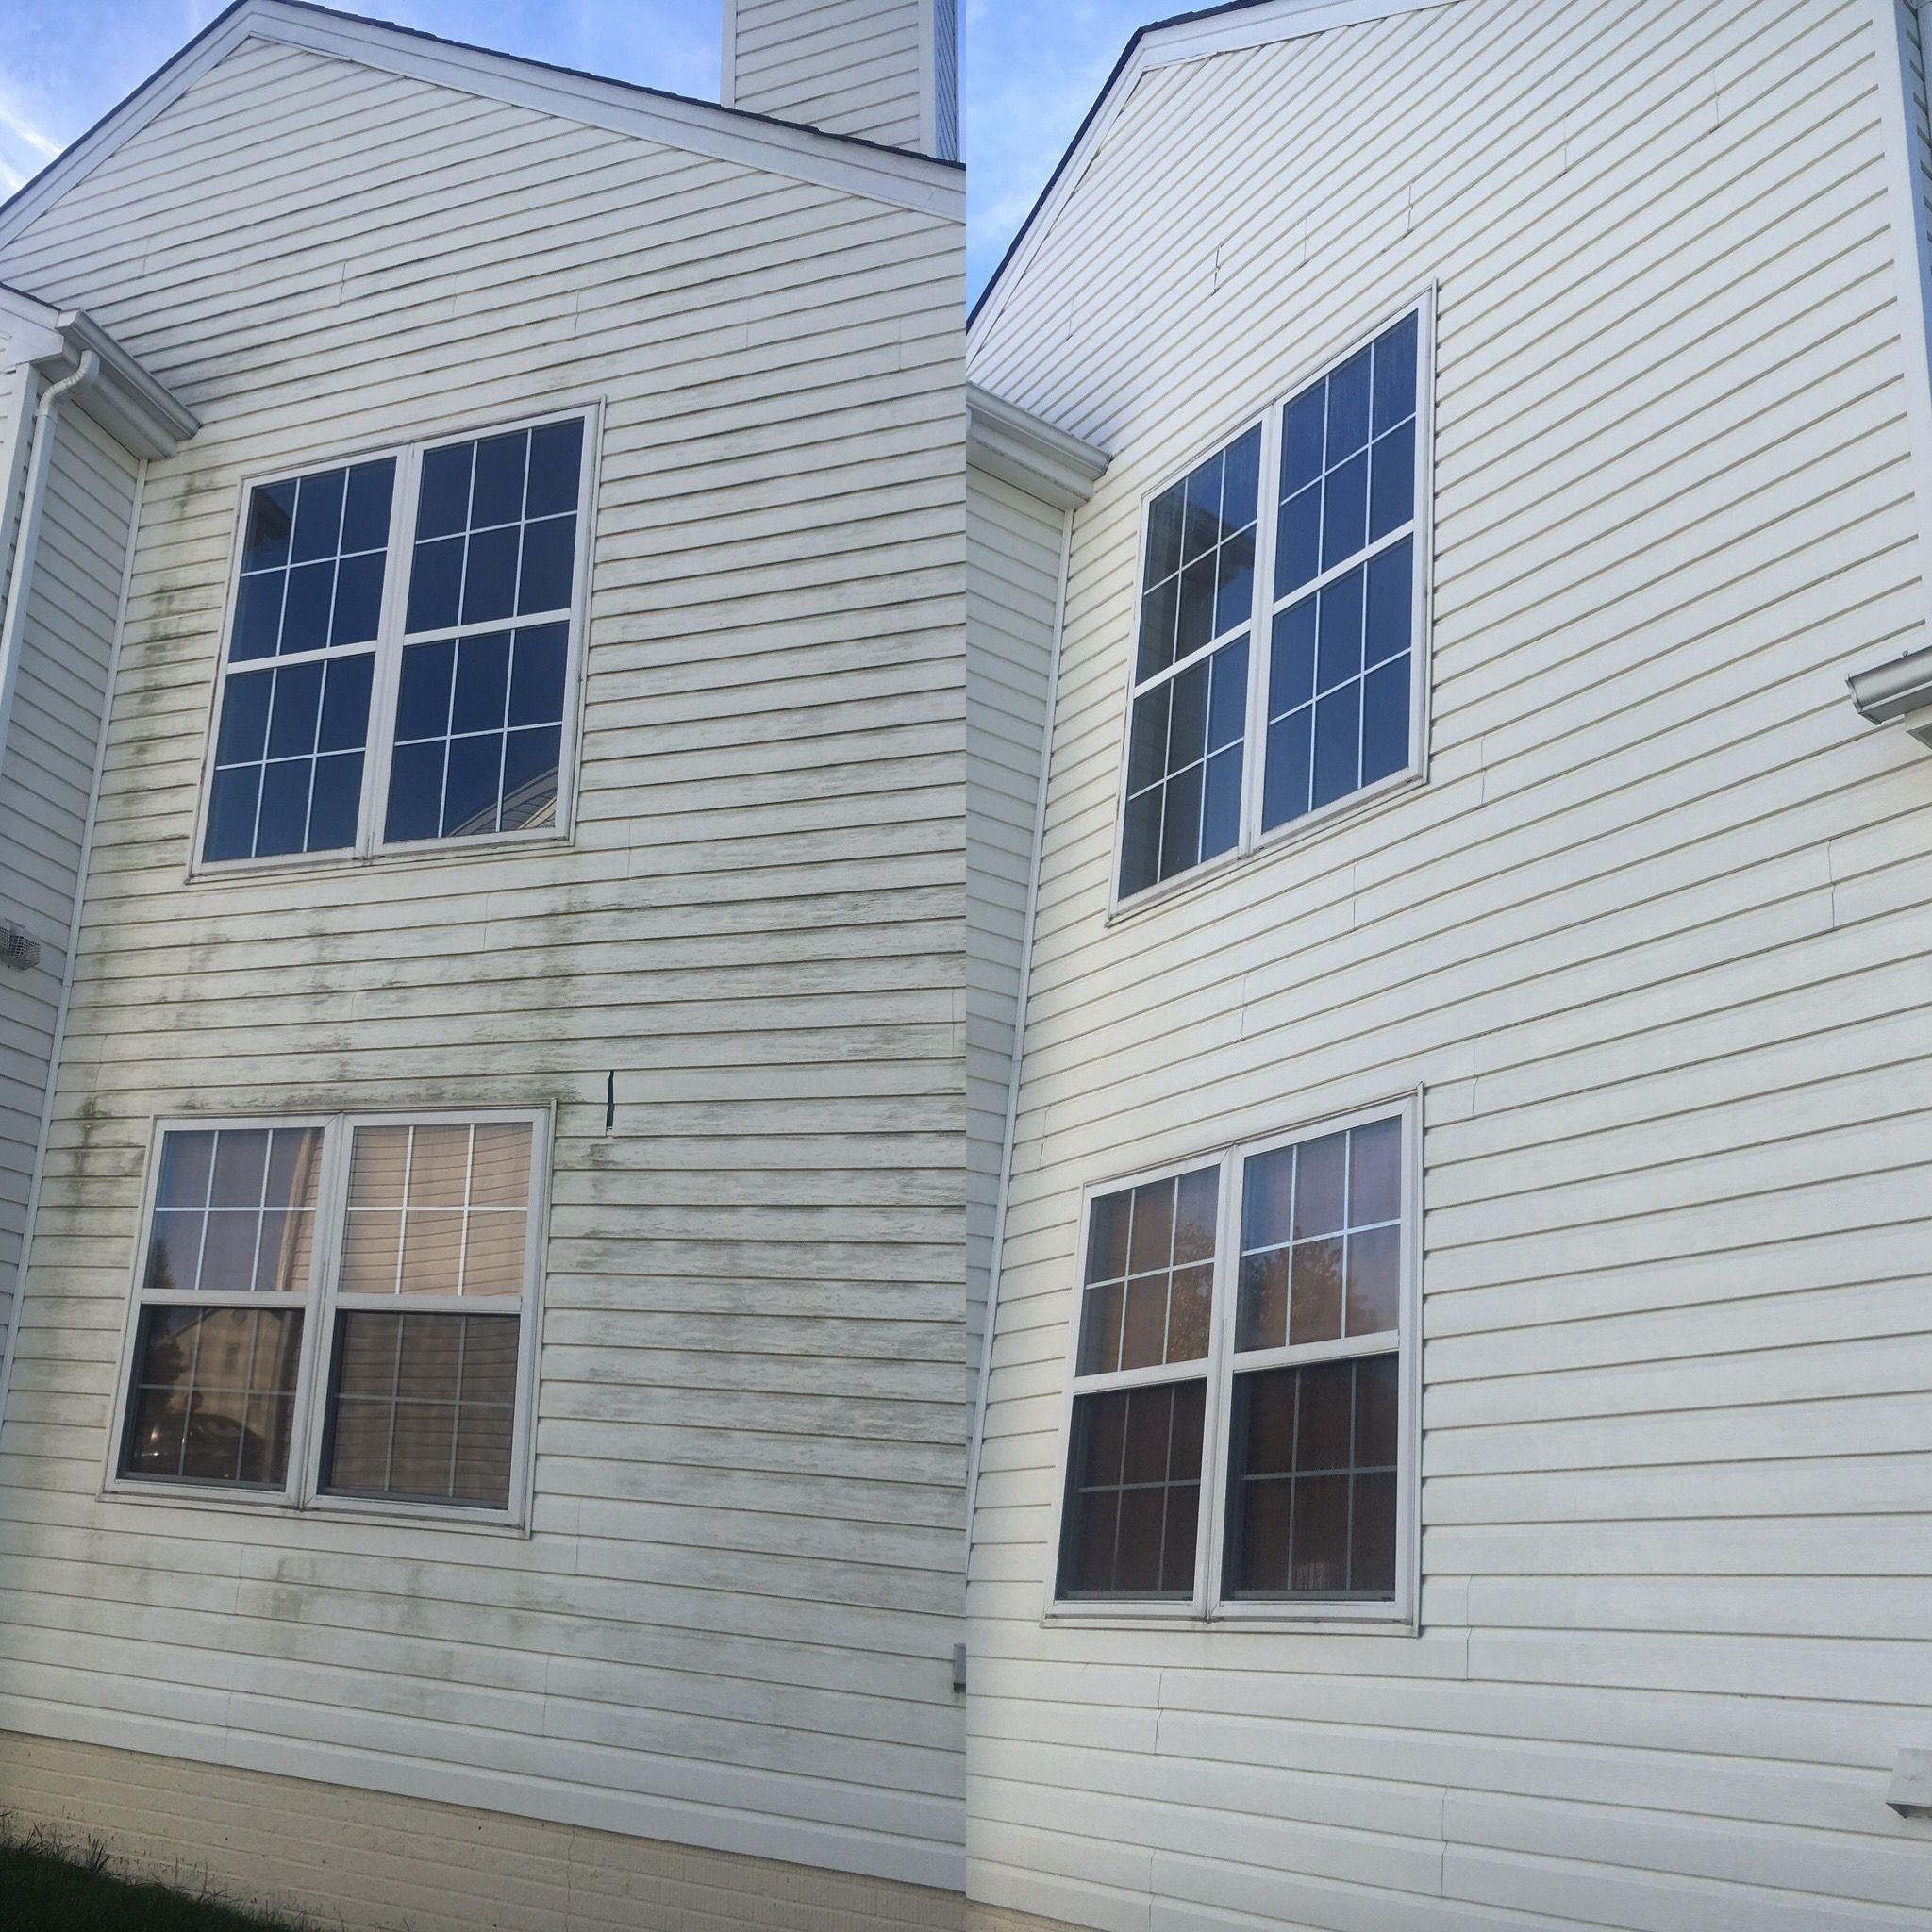 House Low Pressure Wash Siding Power Washed Contact Us For Any